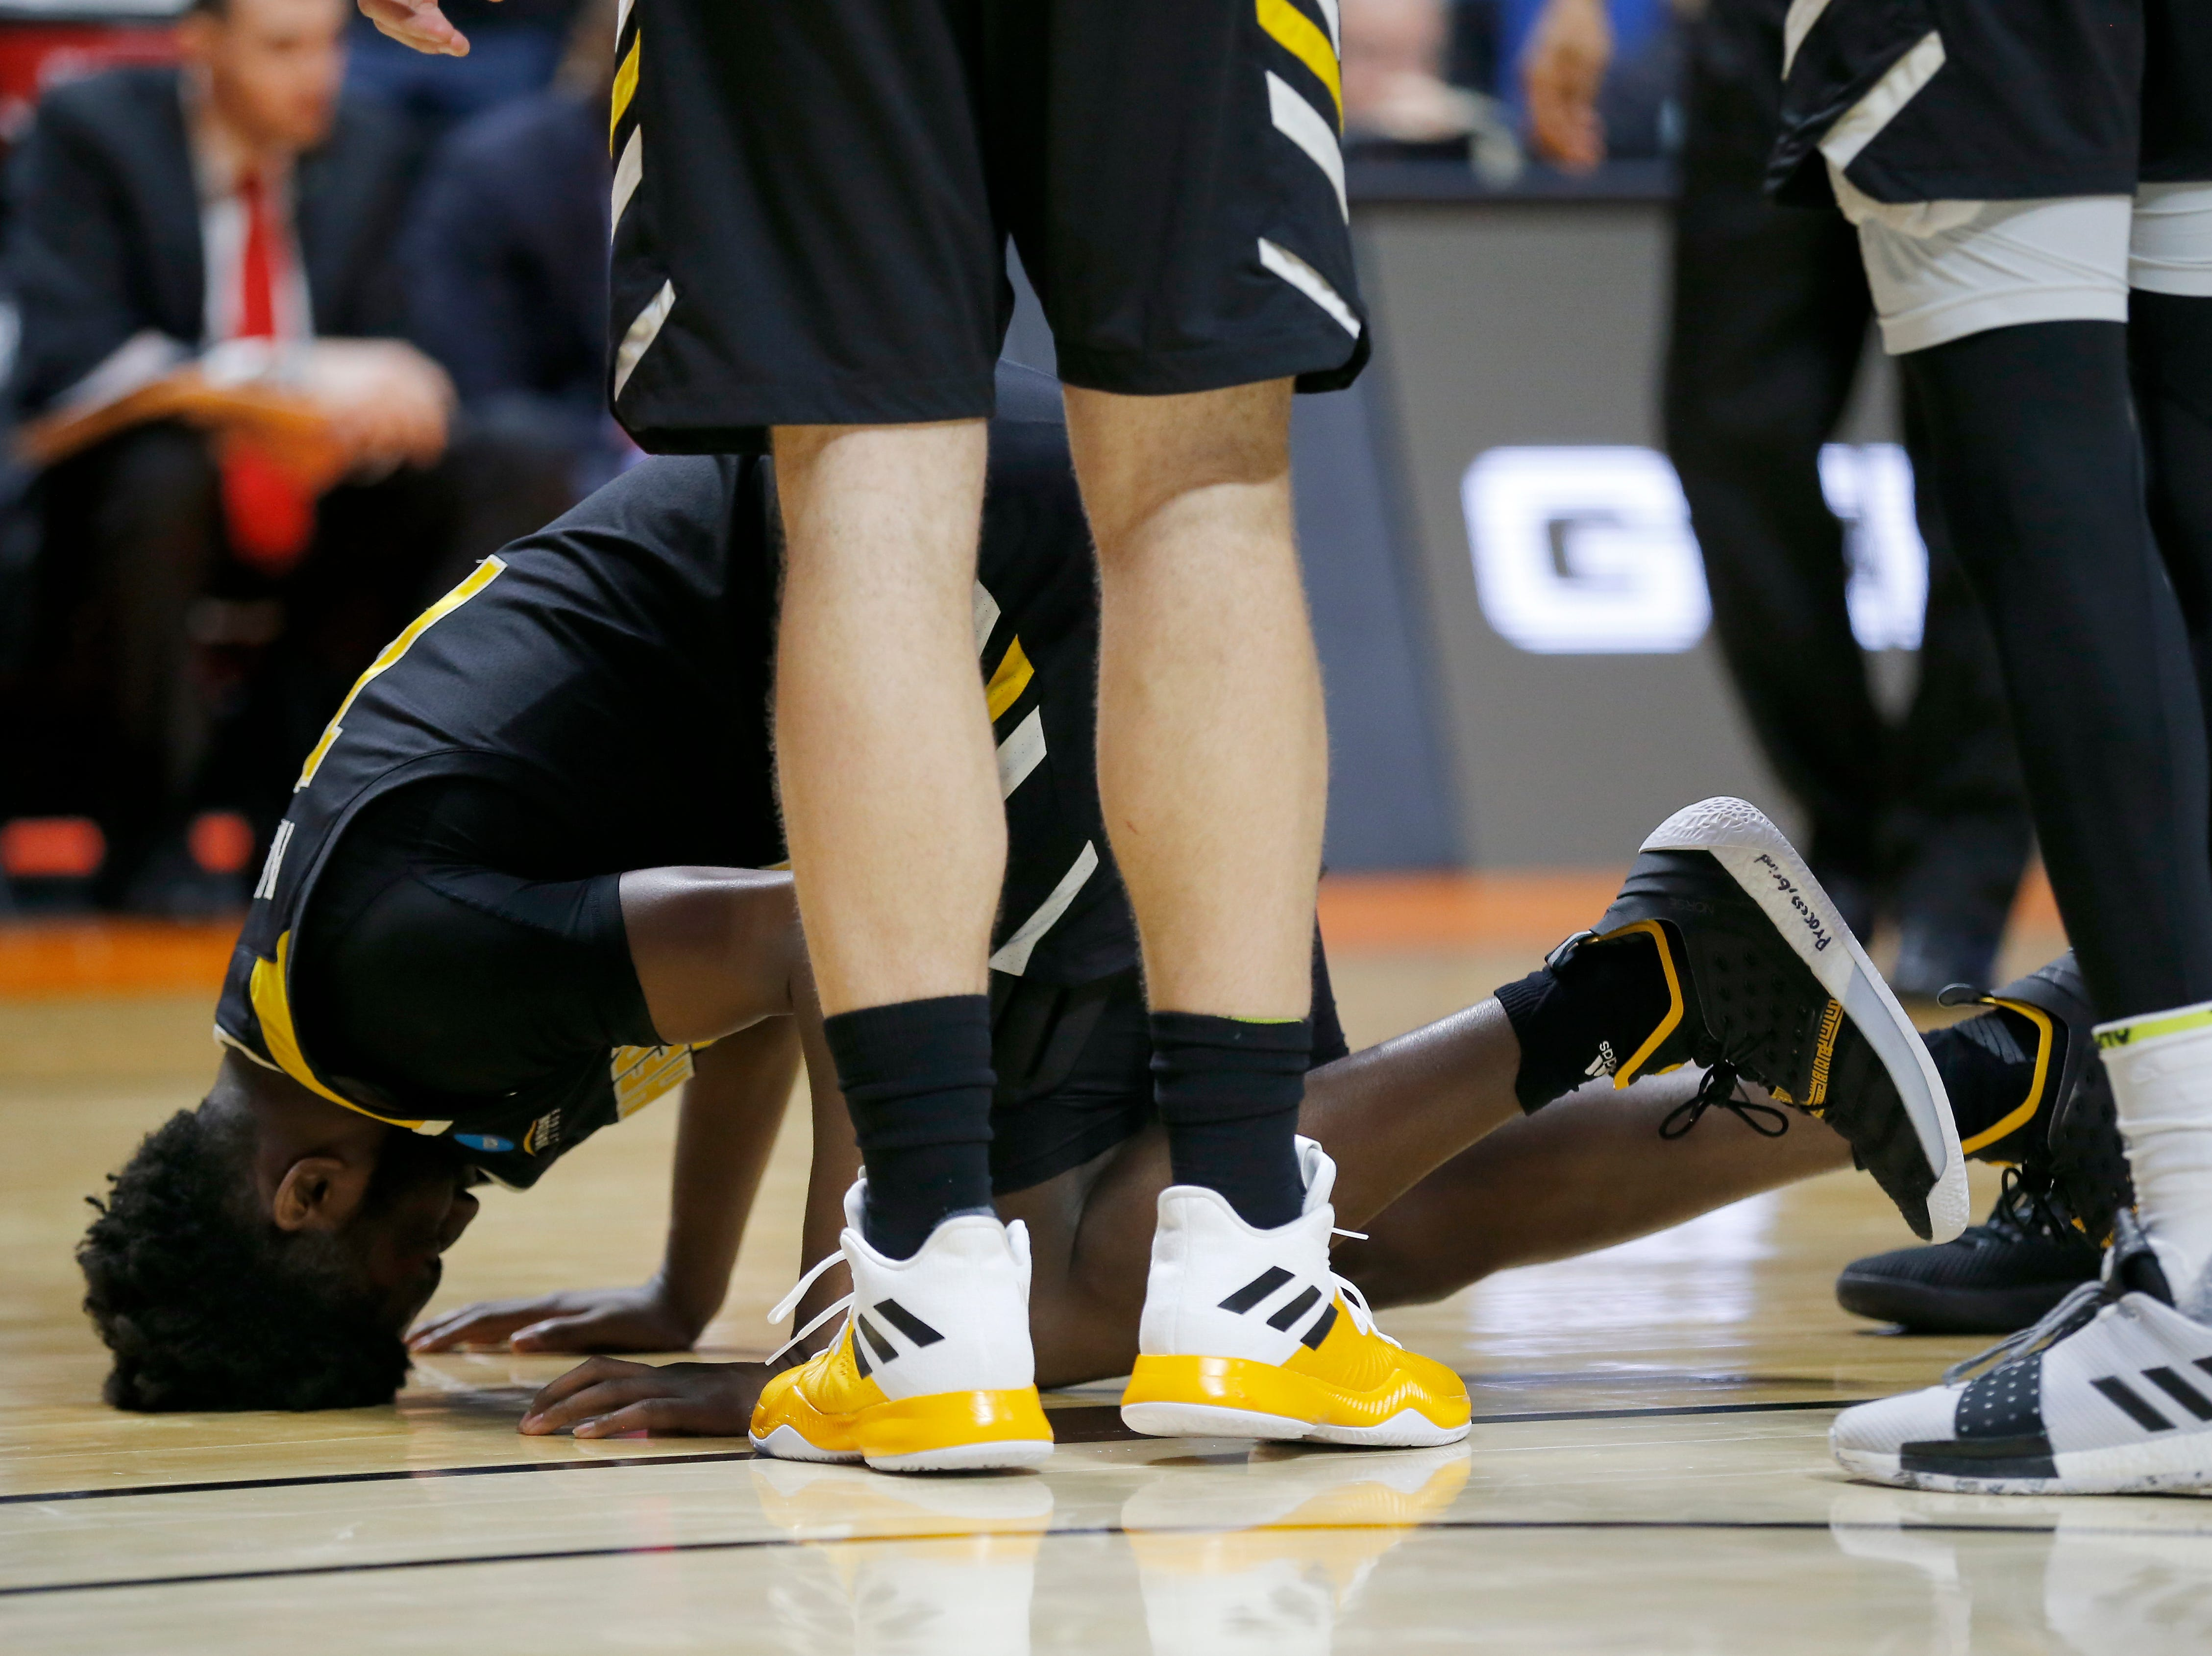 Northern Kentucky Norse guard Trevon Faulkner (12) hesitates to get up after injuring his lower leg colliding with Texas Tech Red Raiders guard Jarrett Culver (23) in the second half of the NCAA Tournament First Round game between the 14-seeded Northern Kentucky Norse and the 3-seeded Texas Tech Red Raiders the BOK Center in downtown Tulsa on Friday, March 22, 2019. NKU was knocked from the tournament with a 72-57 loss to the Red Raiders.